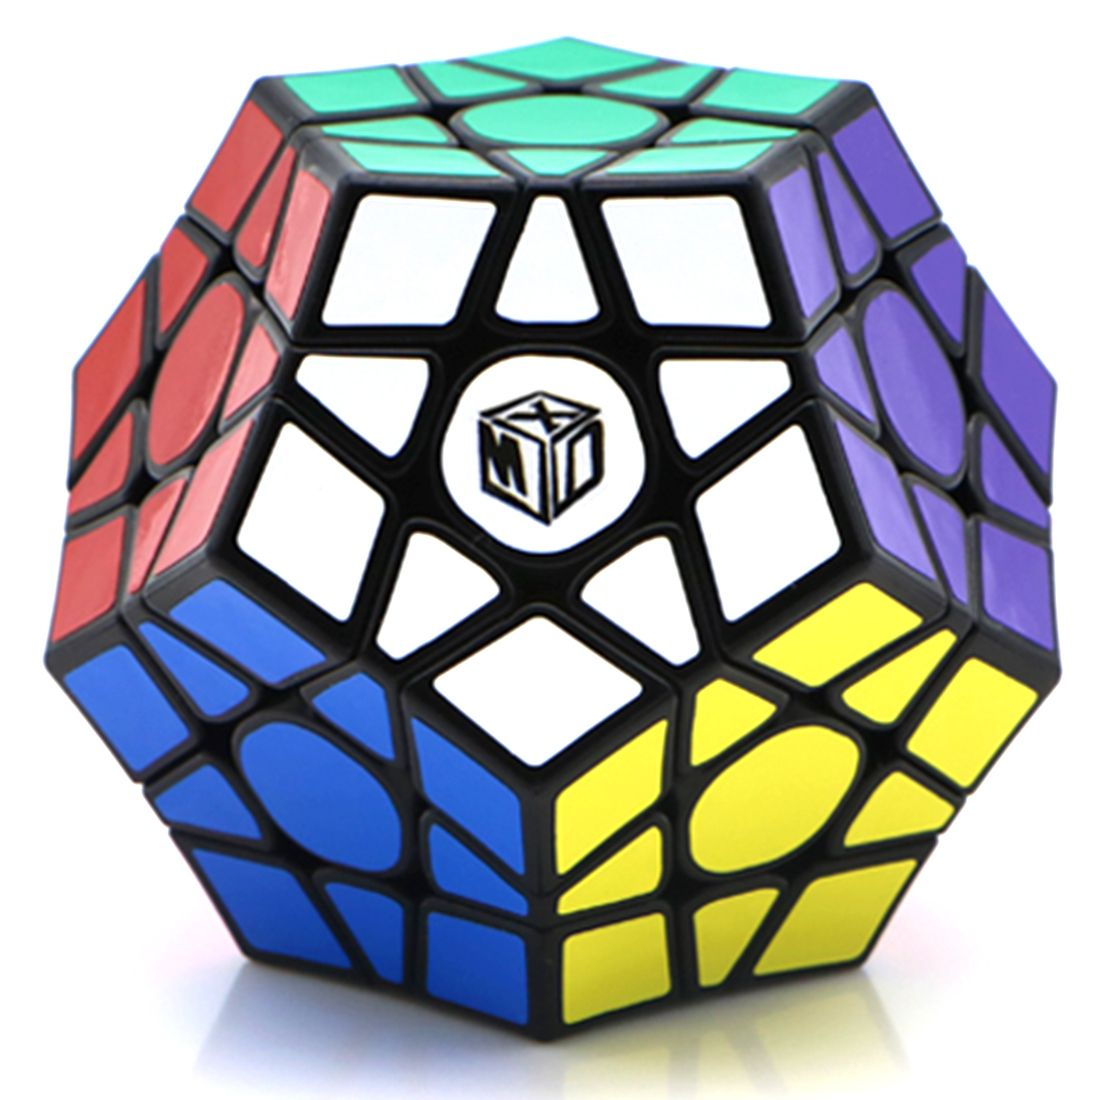 Qiyi Galaxy V2 Megaminx Magic Cube Brain Teaser Puzzle Toy(Concave Type) - Black-base